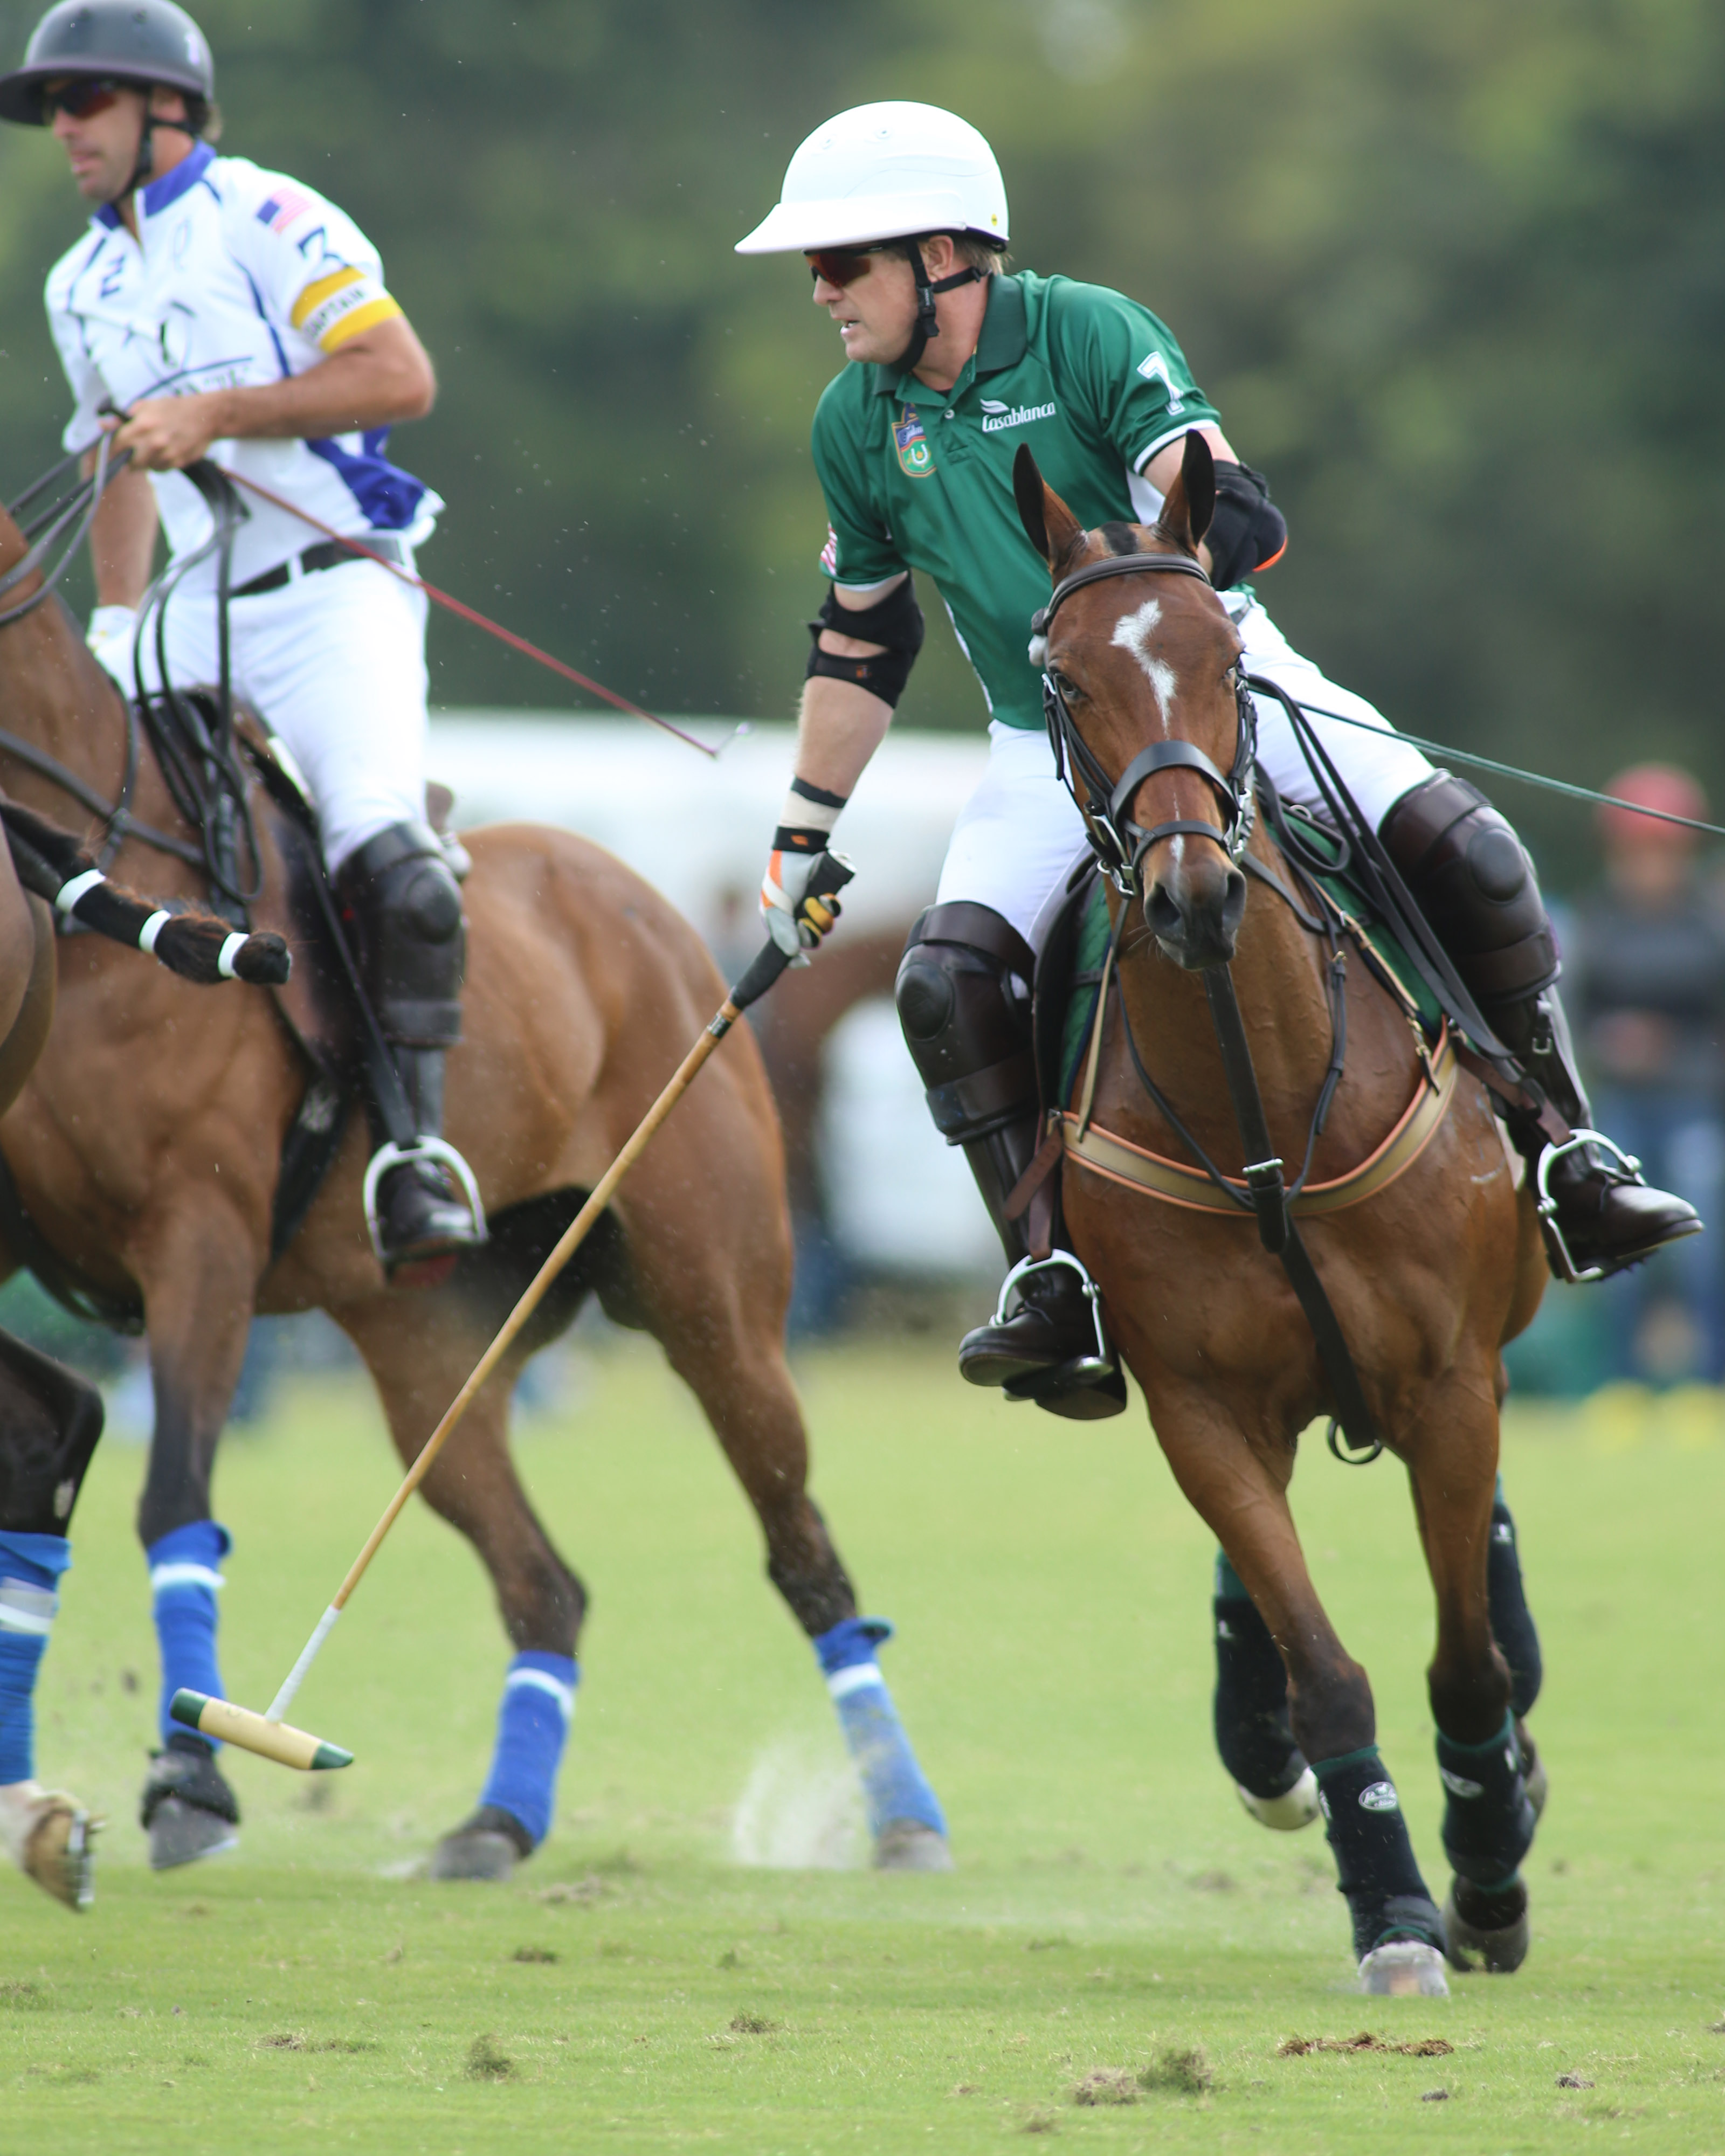 GF0007_GraymarFarm_Photo_Doc'sCourage_GMSoldJeffHildebrandTonkawa26goalpolo_4.6.18_FL